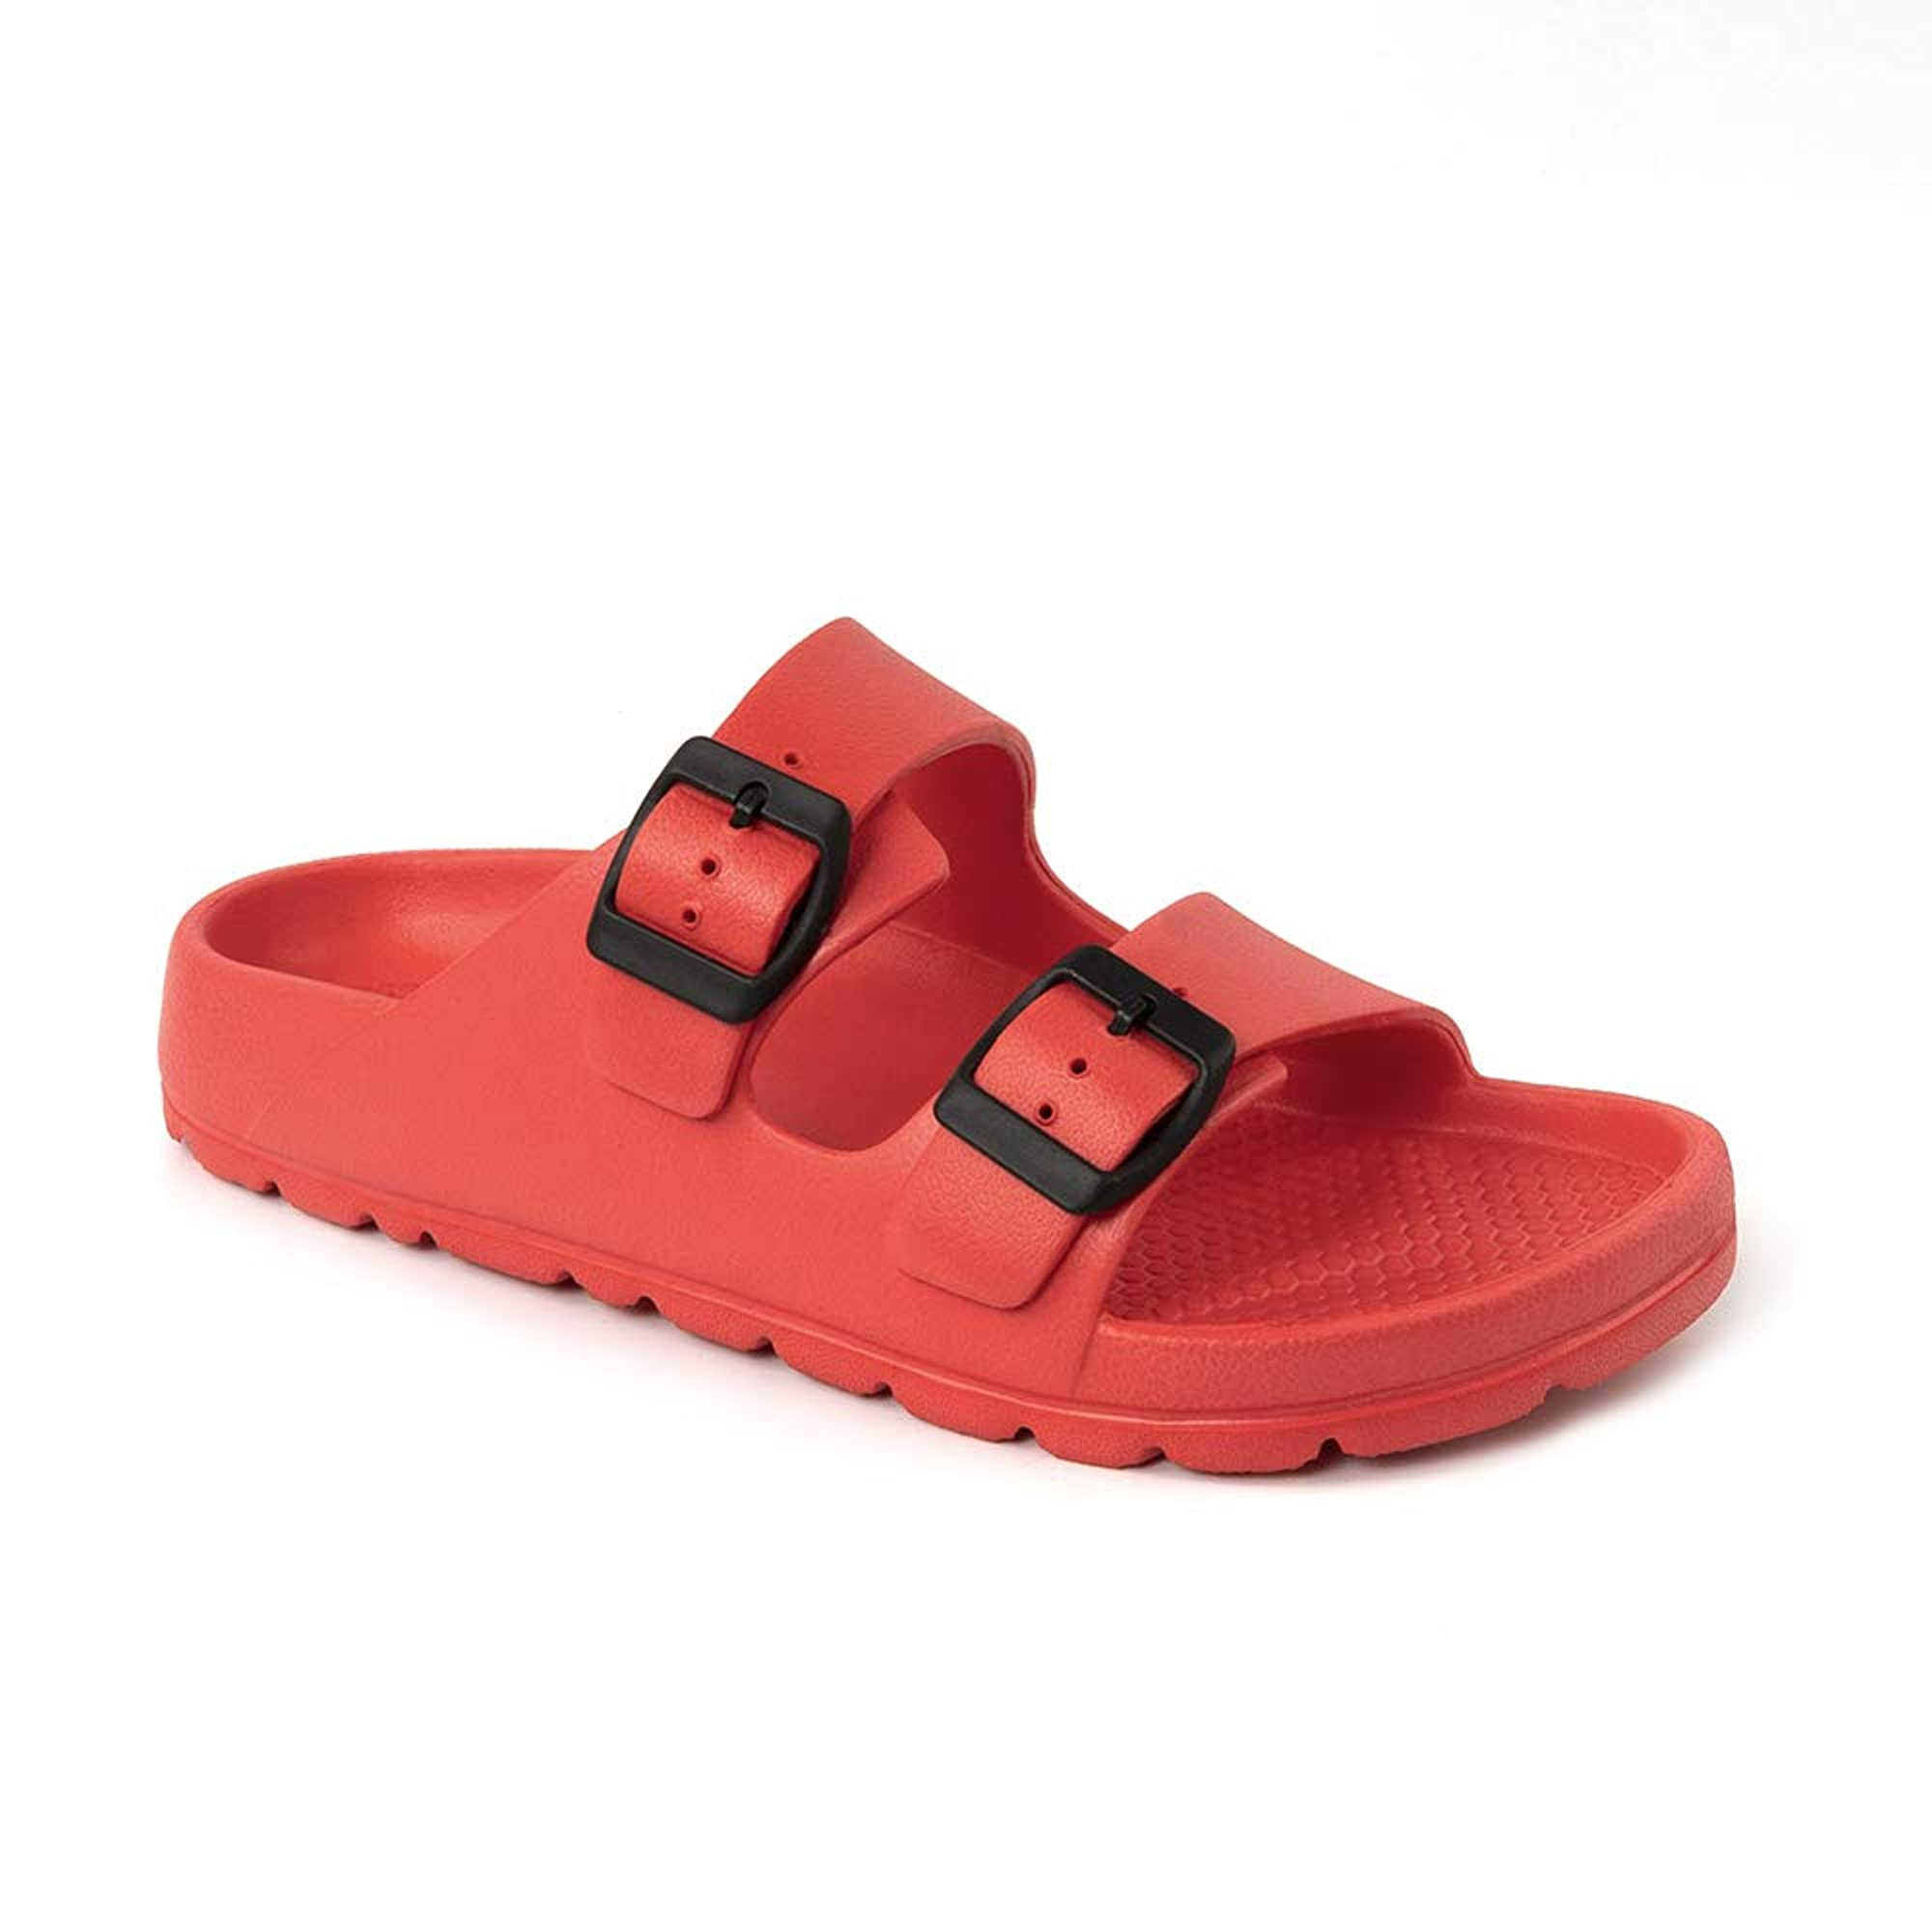 Footbed Sandals With Adjustable Slip